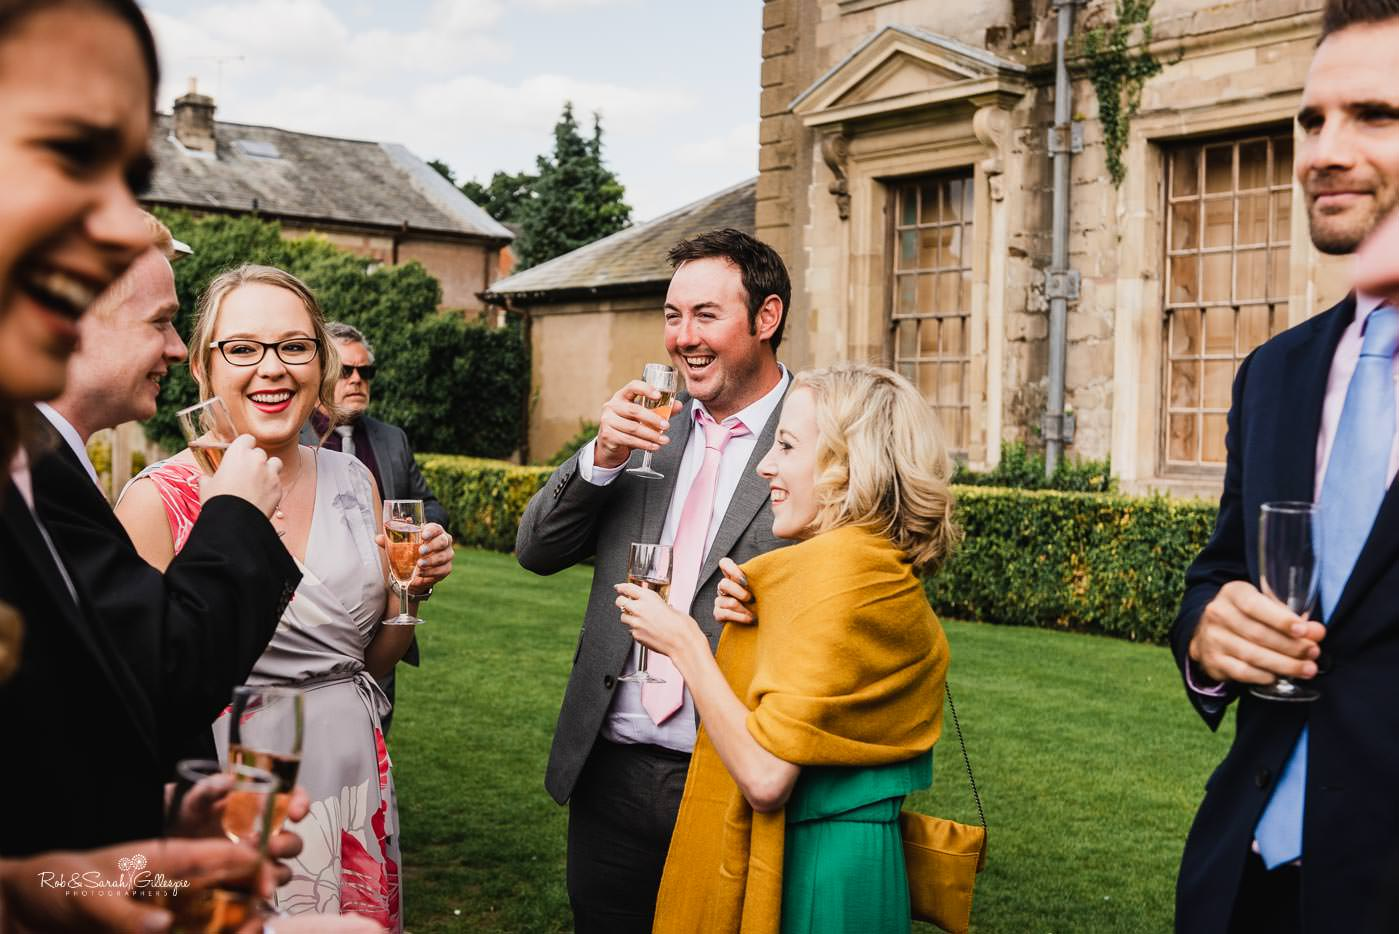 Natural and candid photos at Coombe Abbey wedding reception